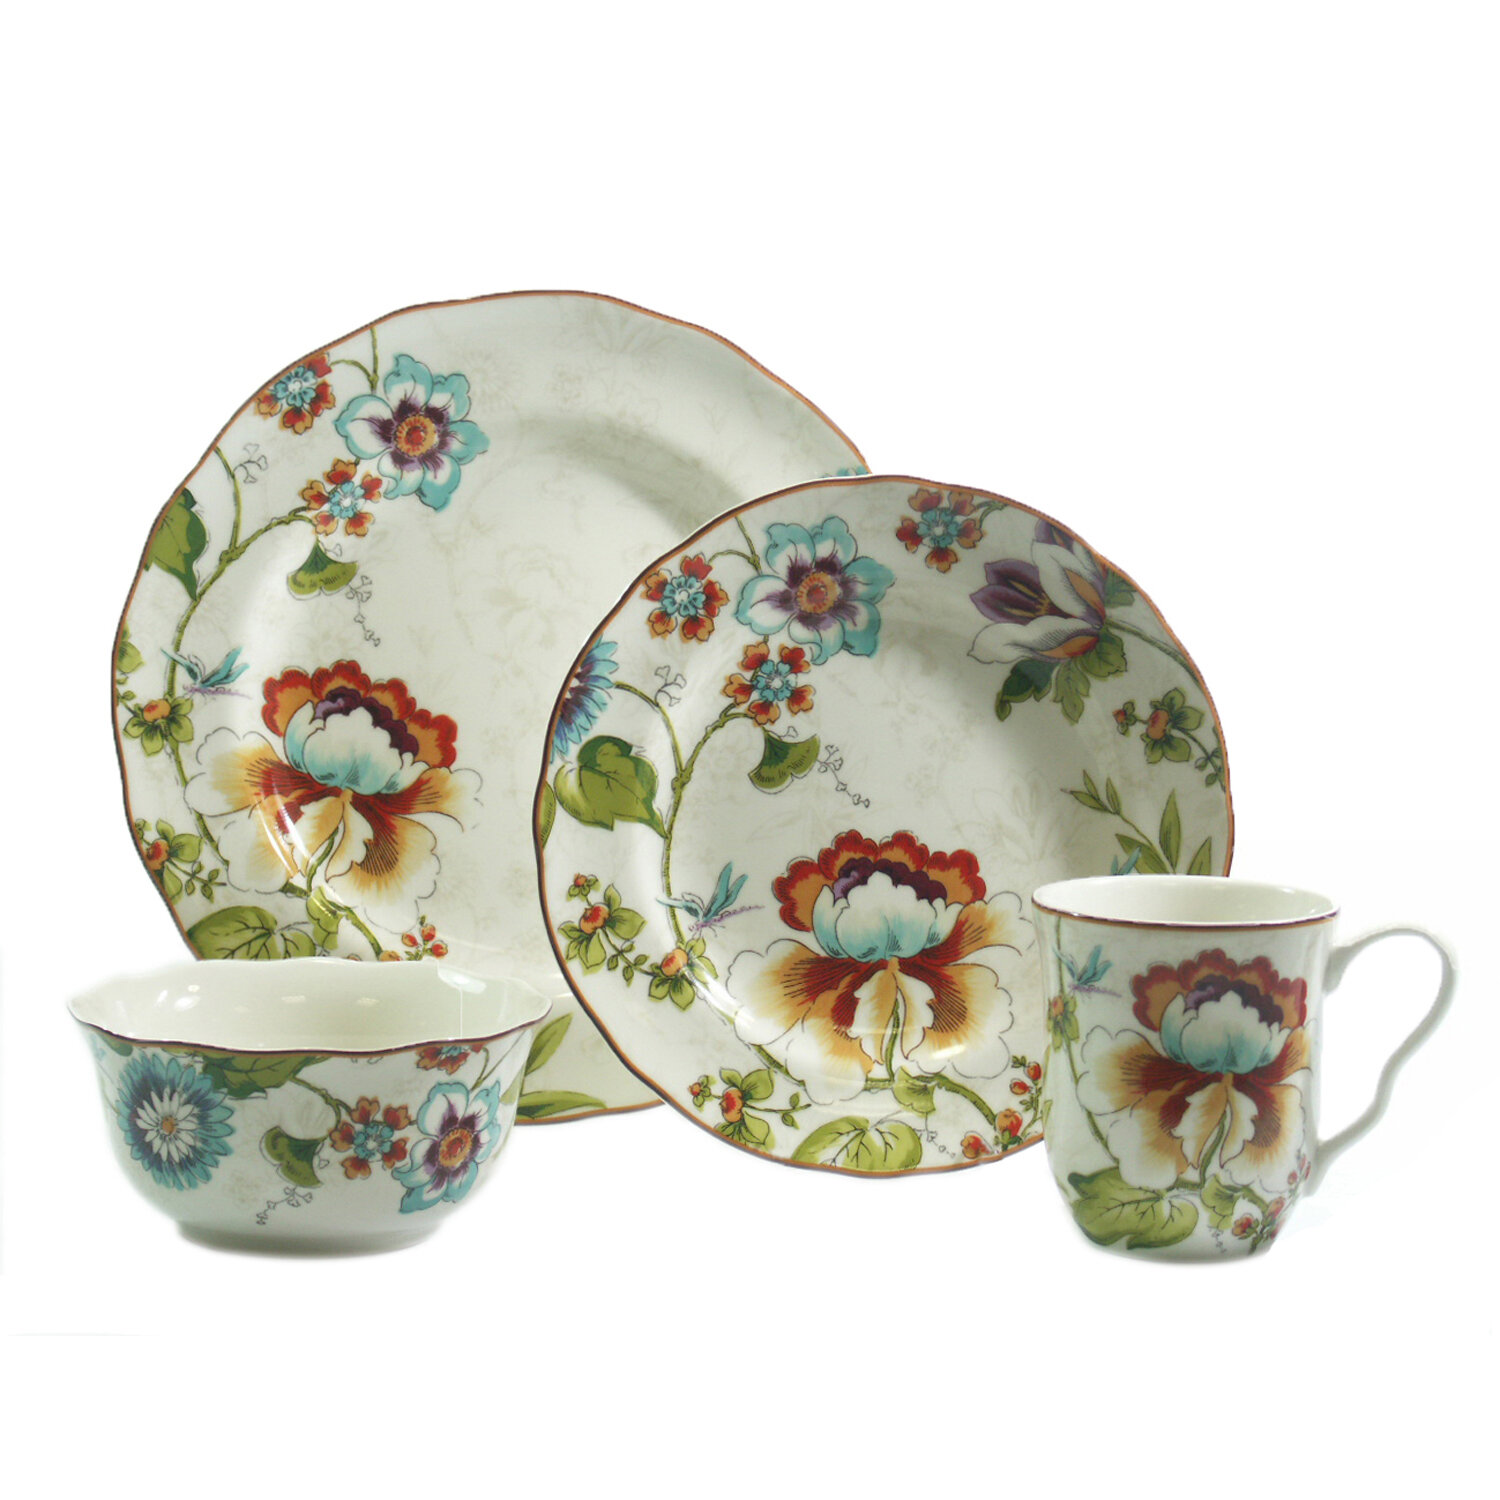 222 fifth bella vista 16 piece dinnerware set ebay For222 Fifth Dinnerware